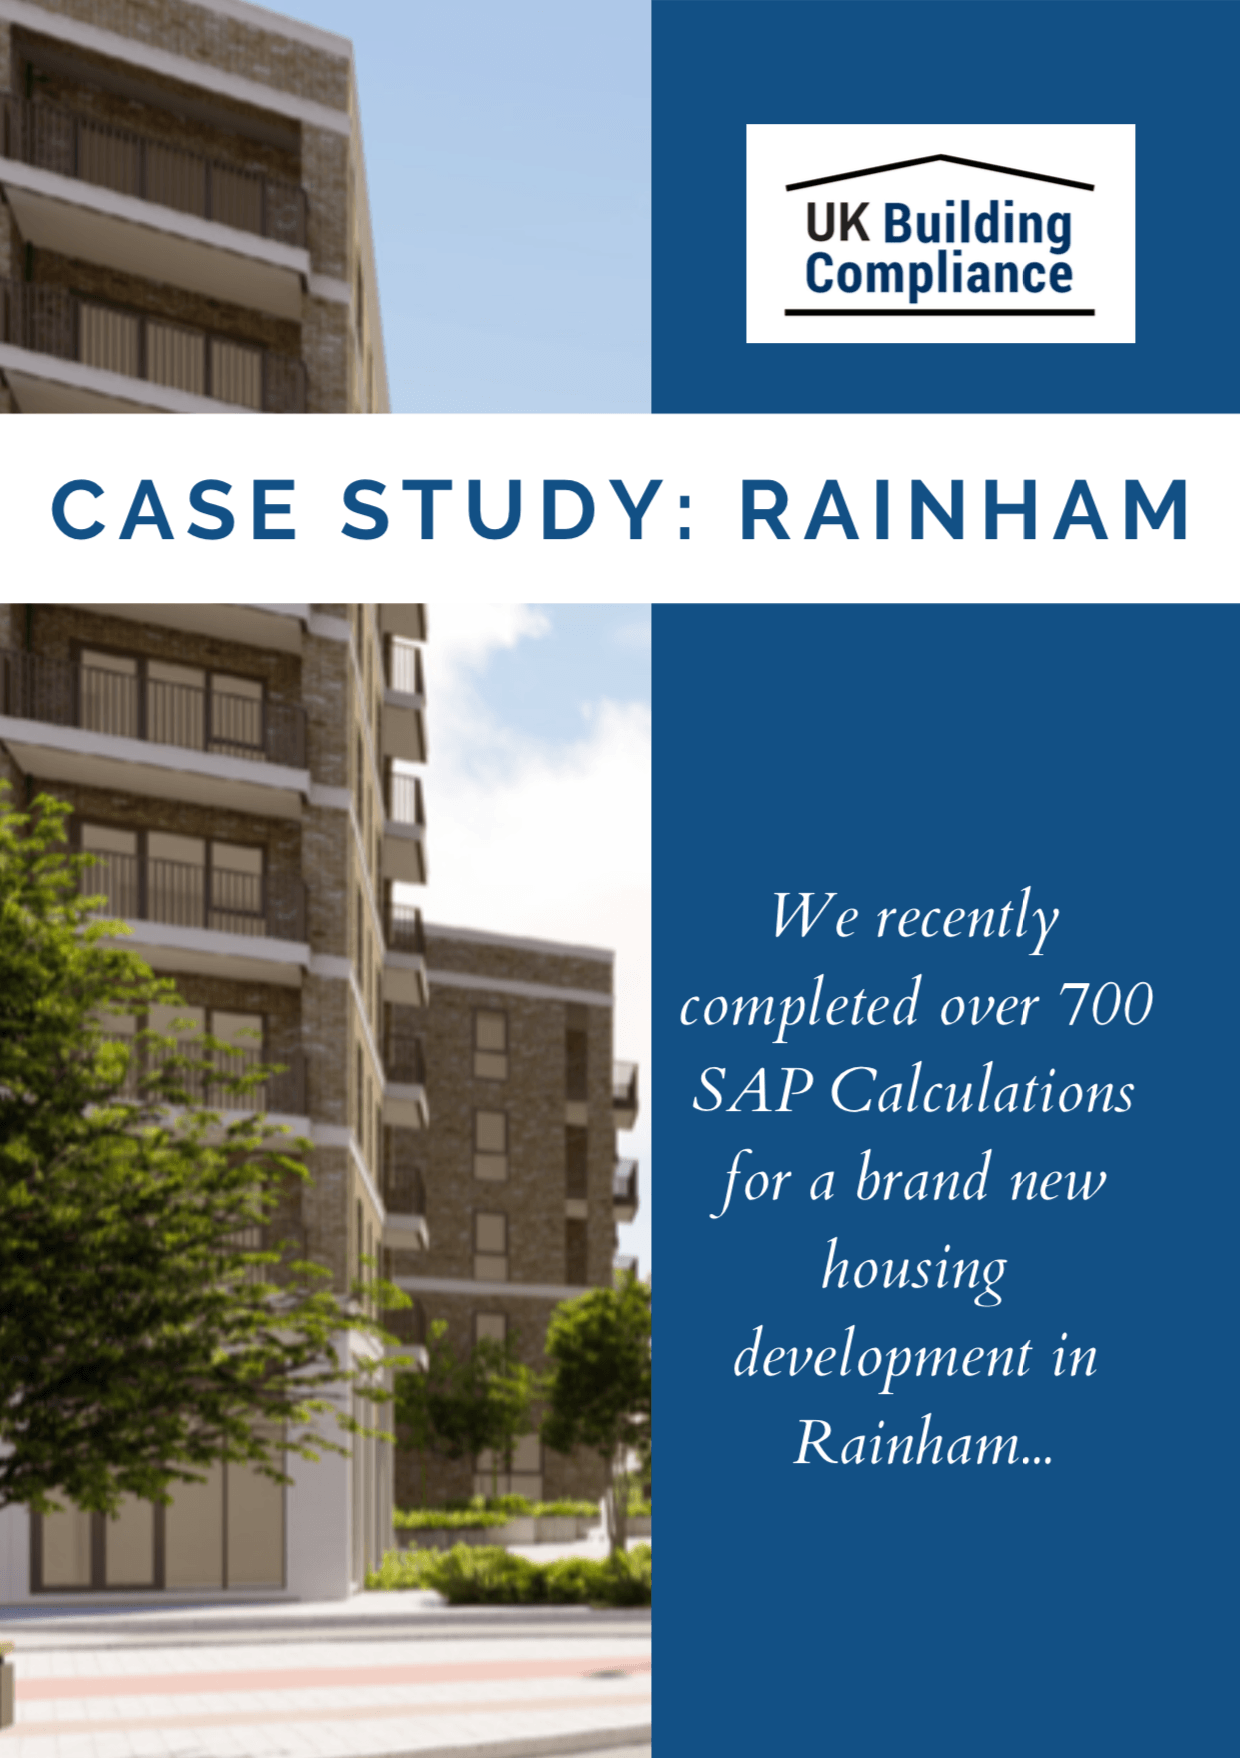 SAP Calculation Project - Rainham